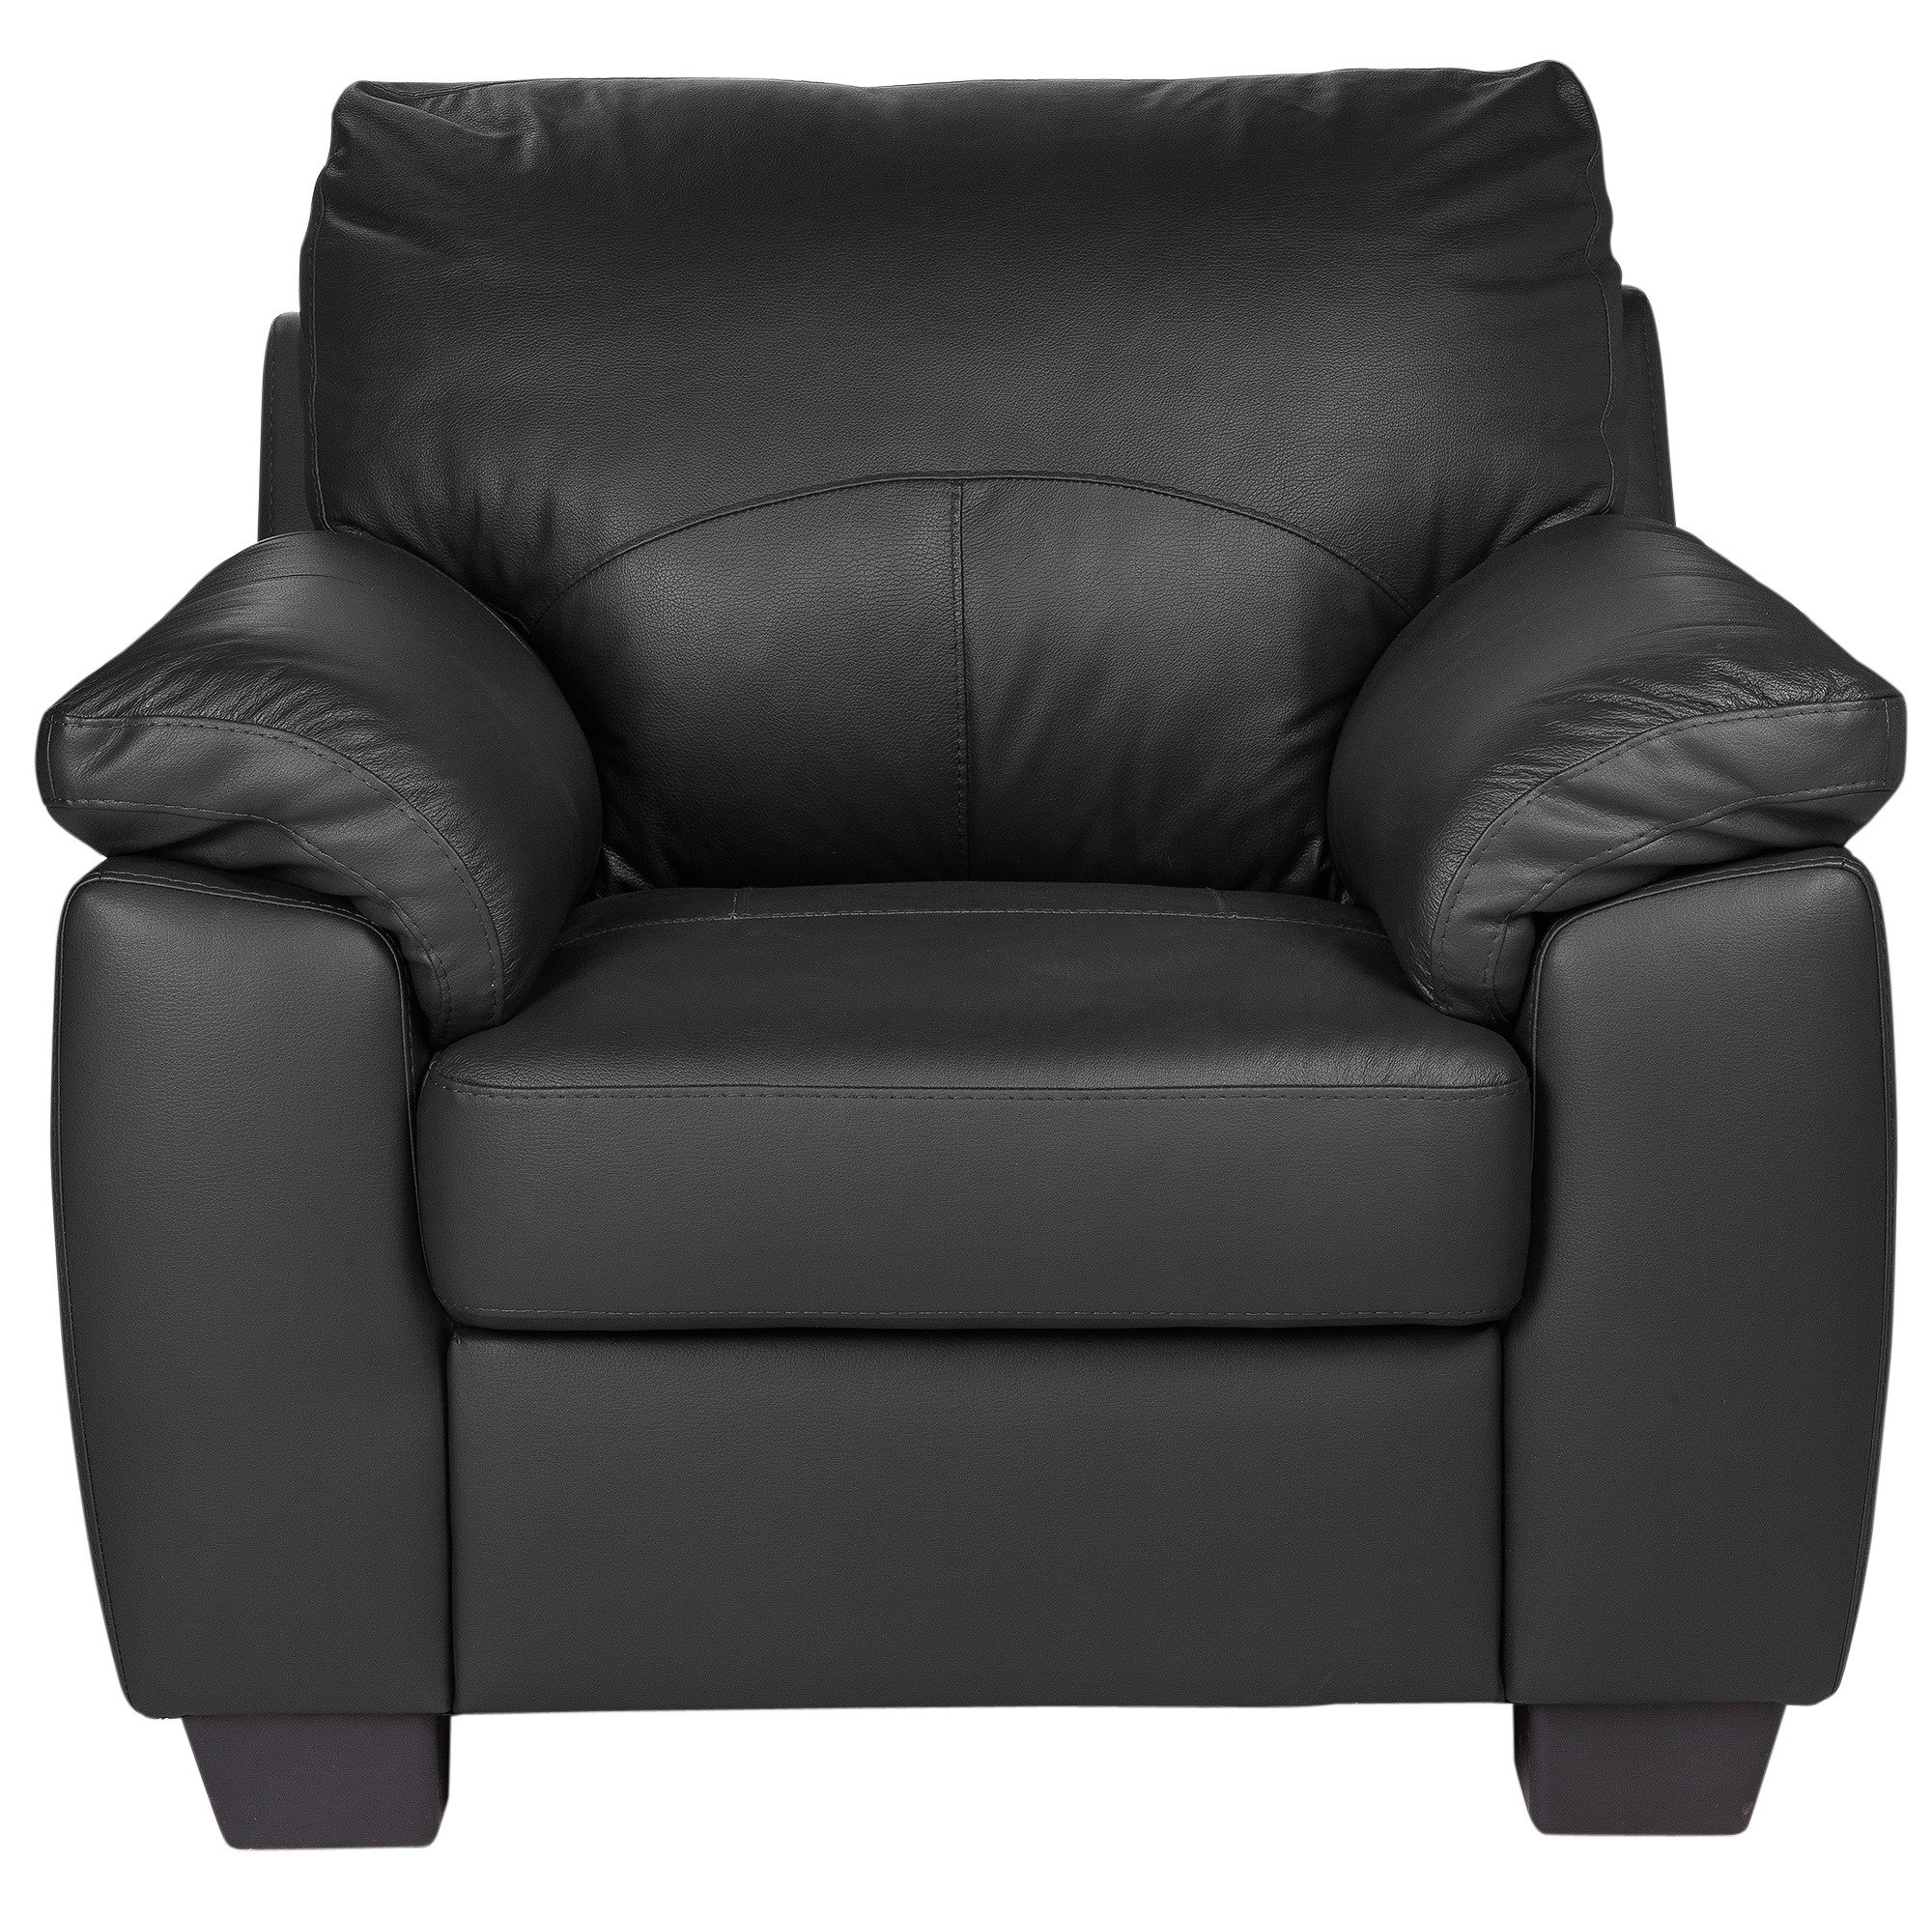 Sale On Argos Home New Logan Leather Chair Black